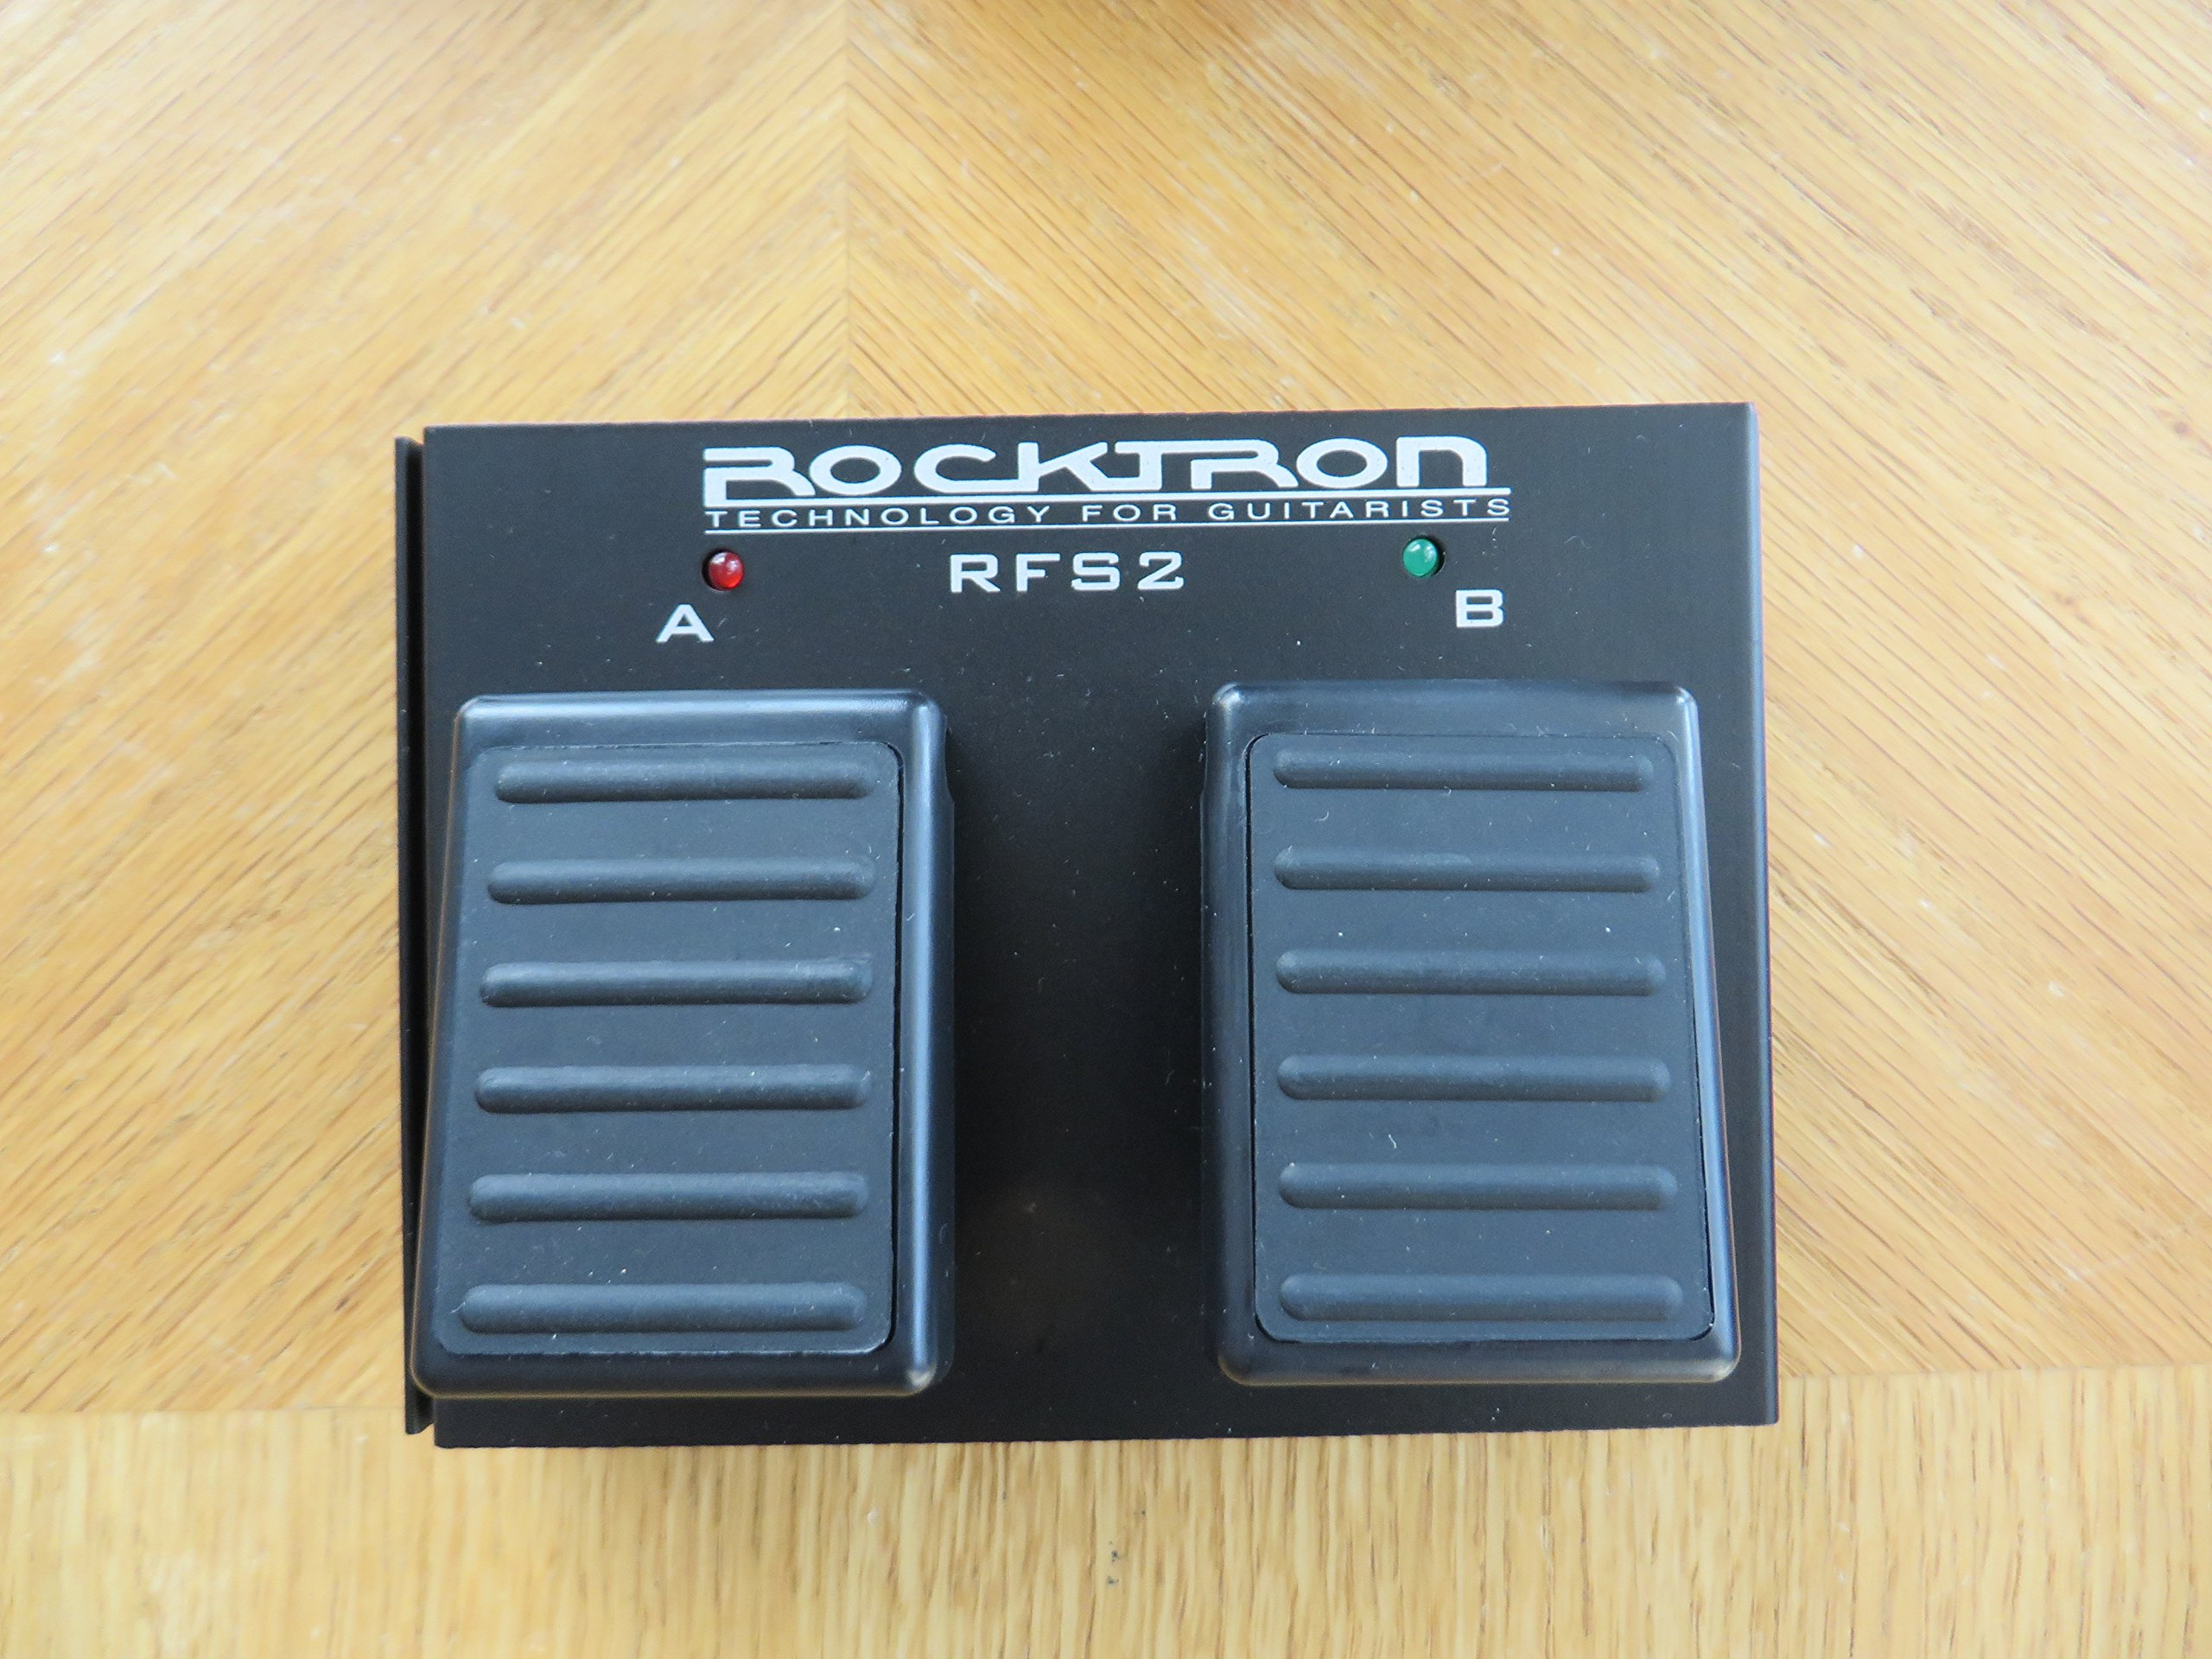 Rocktron RFS2 dual On/Off guitar amp footswitch by Rocktron